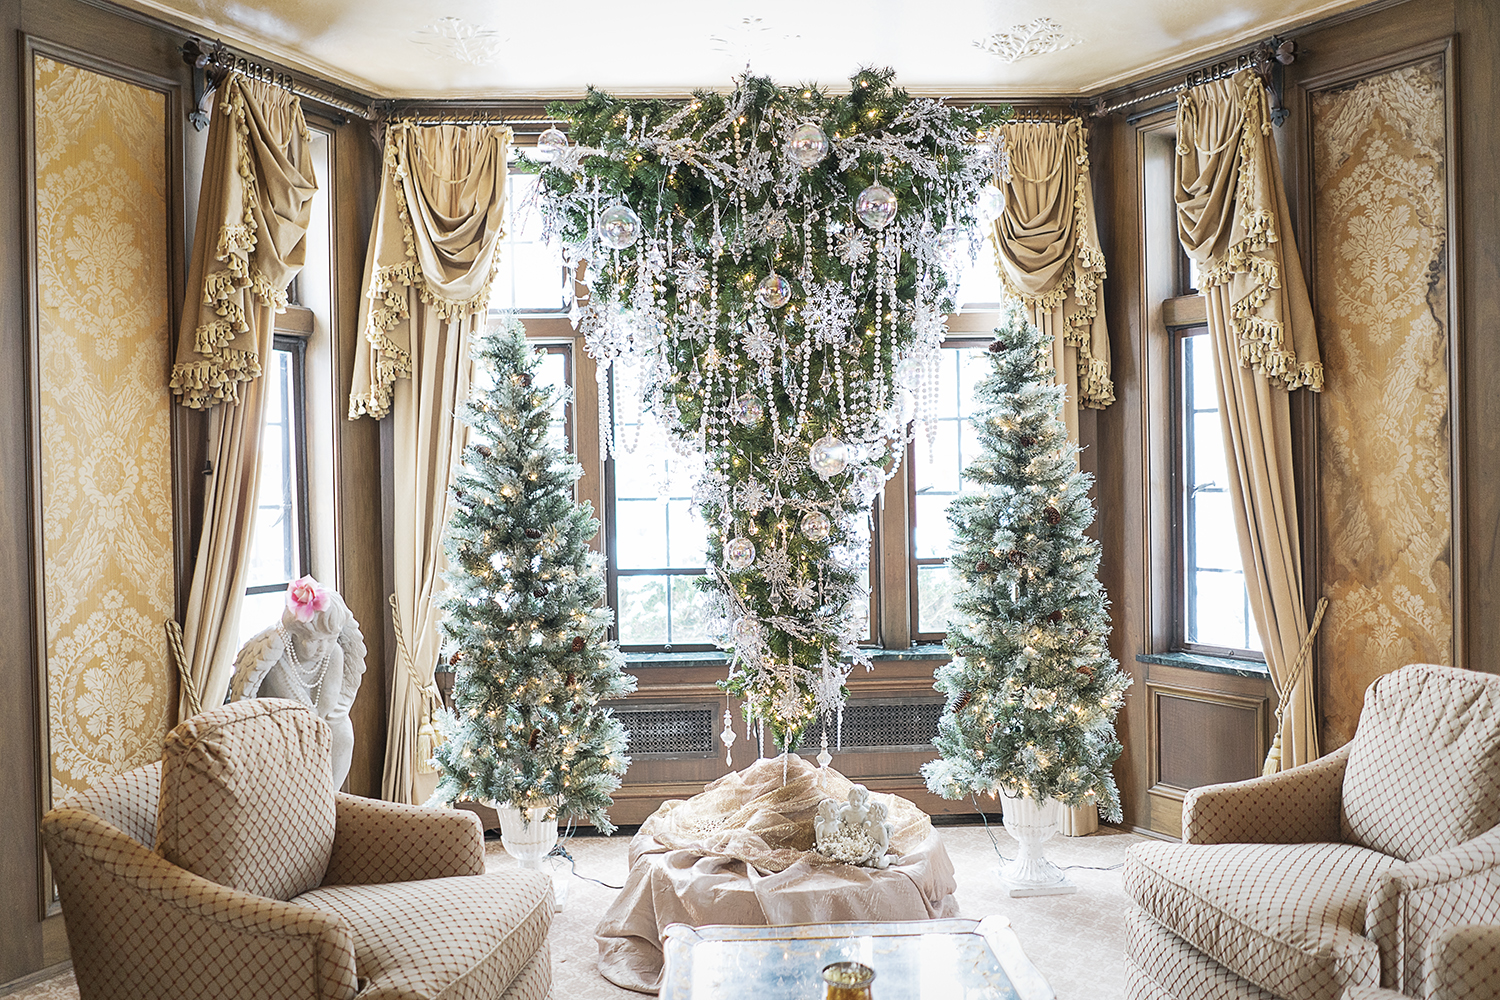 Flint, MI - Saturday, December 9, 2017: One of the main Christmas tree attractions, is the upside-down tree in the living room of the Heddy home.Tim Galloway for FlintSide